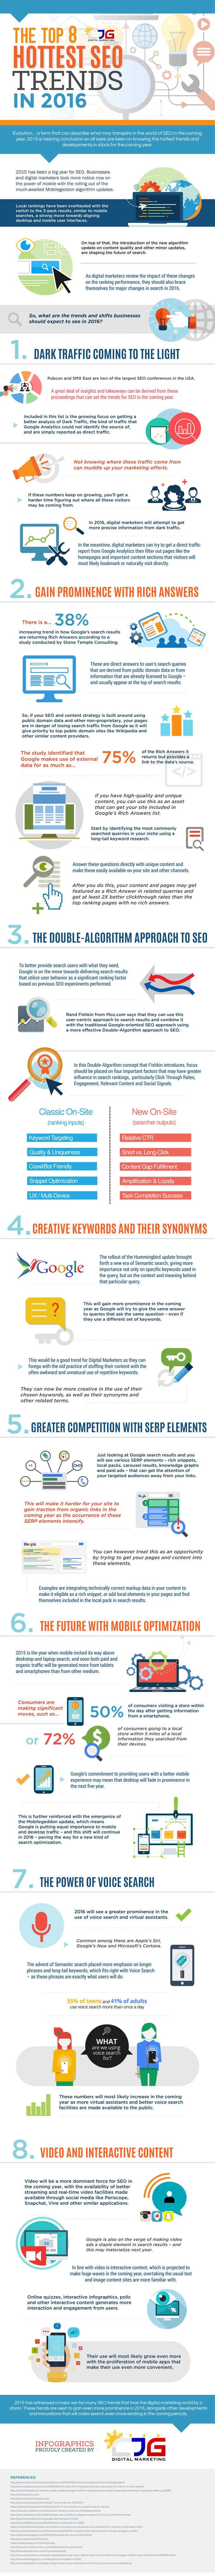 8 SEO Trends for 2016: How to Achieve Google Success Next Year